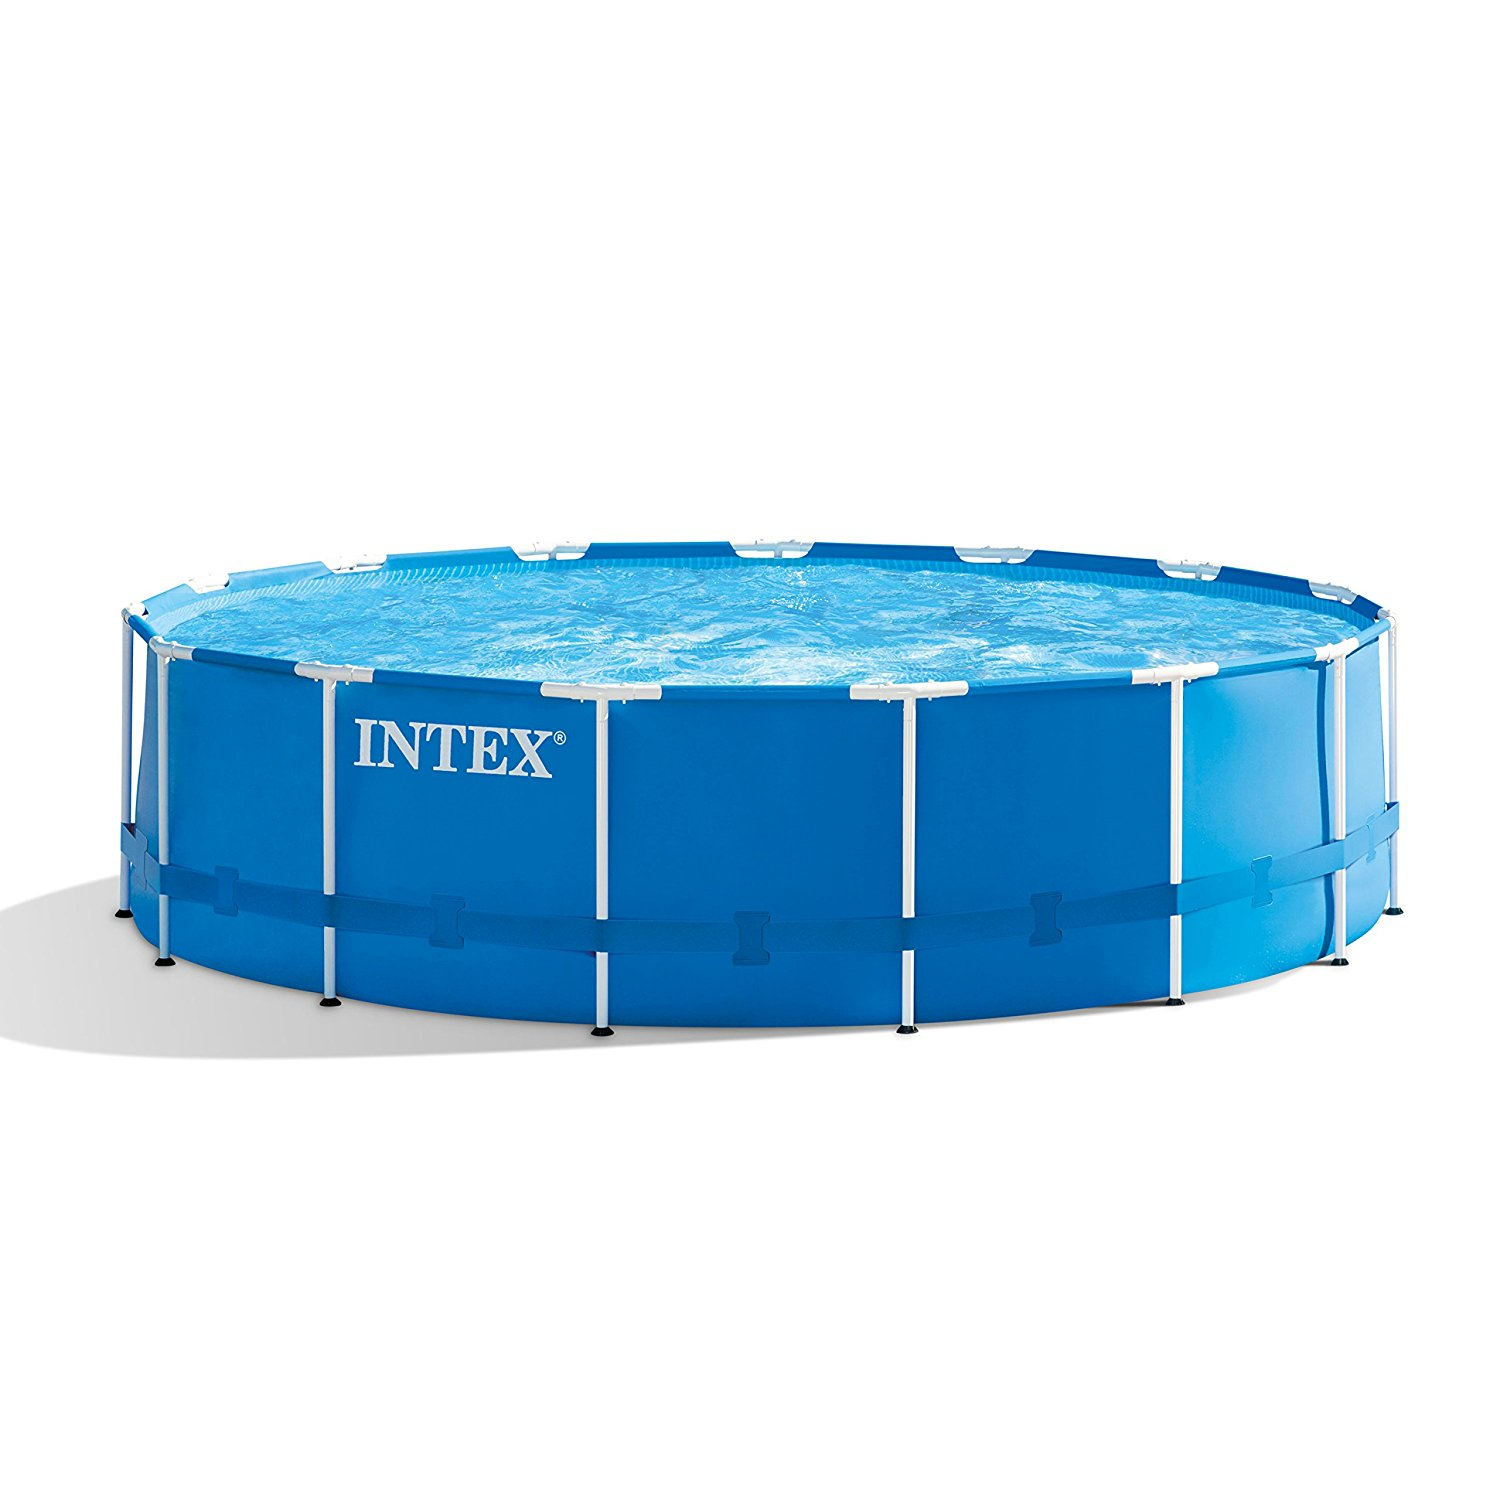 Intex 28241eh 15ft x 48in metal frame pool set with filter pump ladder ground cloth pool - Steel frame pool ...